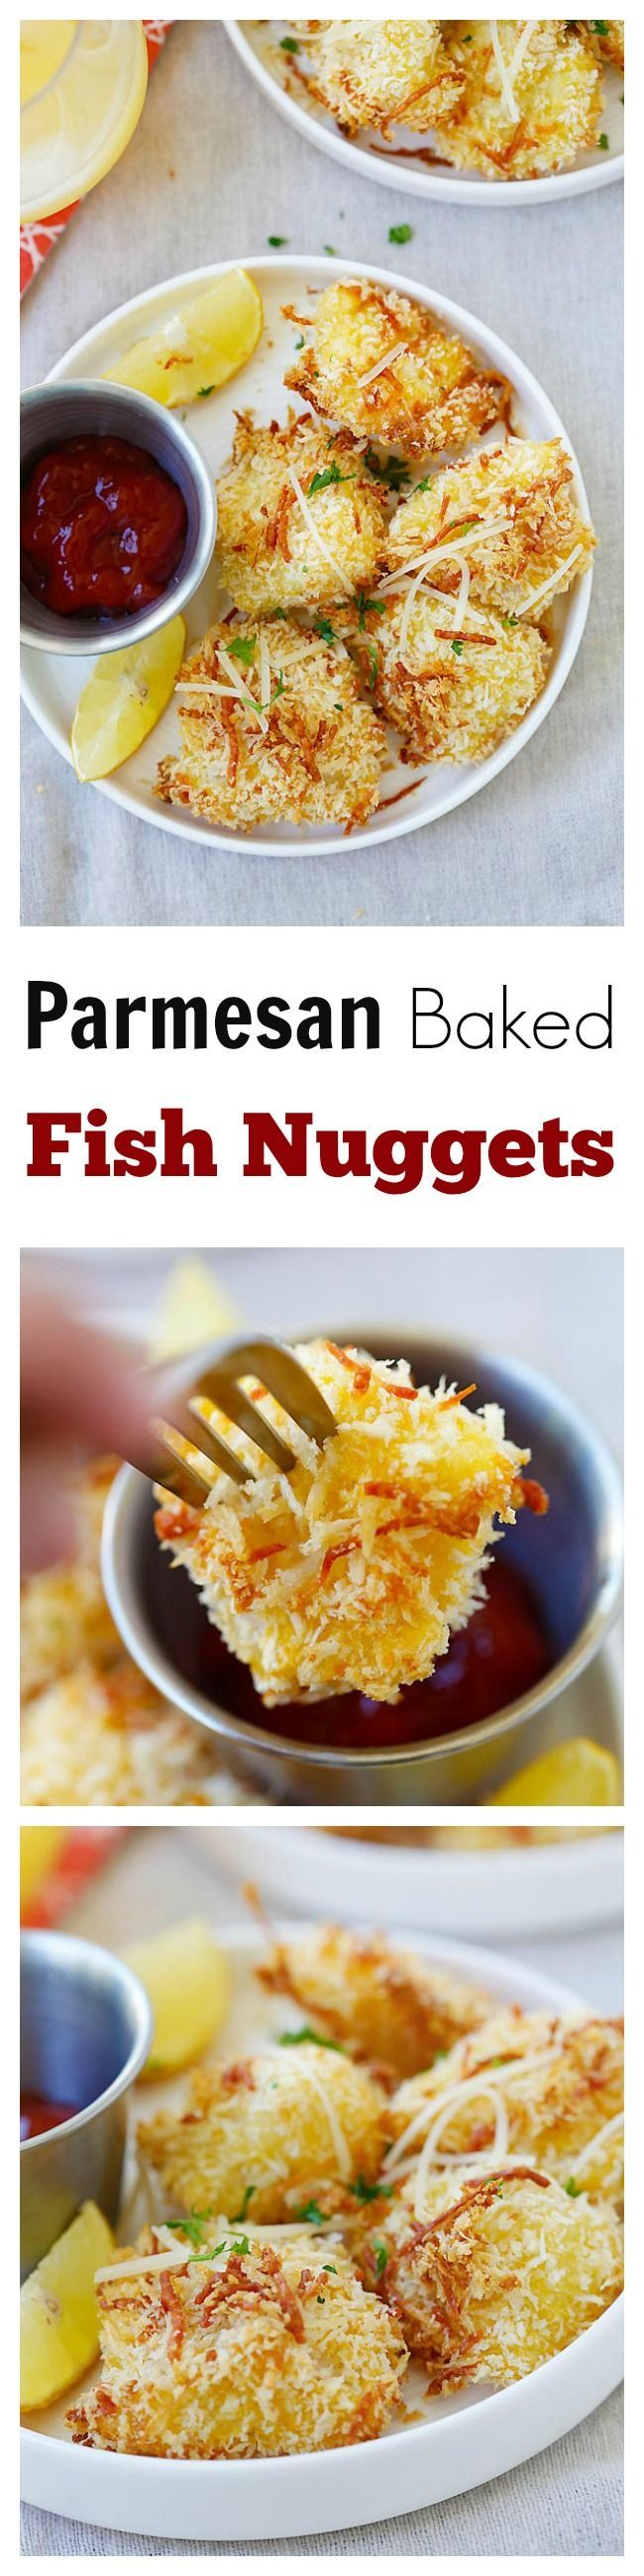 Parmesan Baked Fish Nuggets - crispy fish nuggets with cod fish and no frying. SO easy and delicious, perfect for kids and the entire family!! | rasamalaysia.com  | #fish